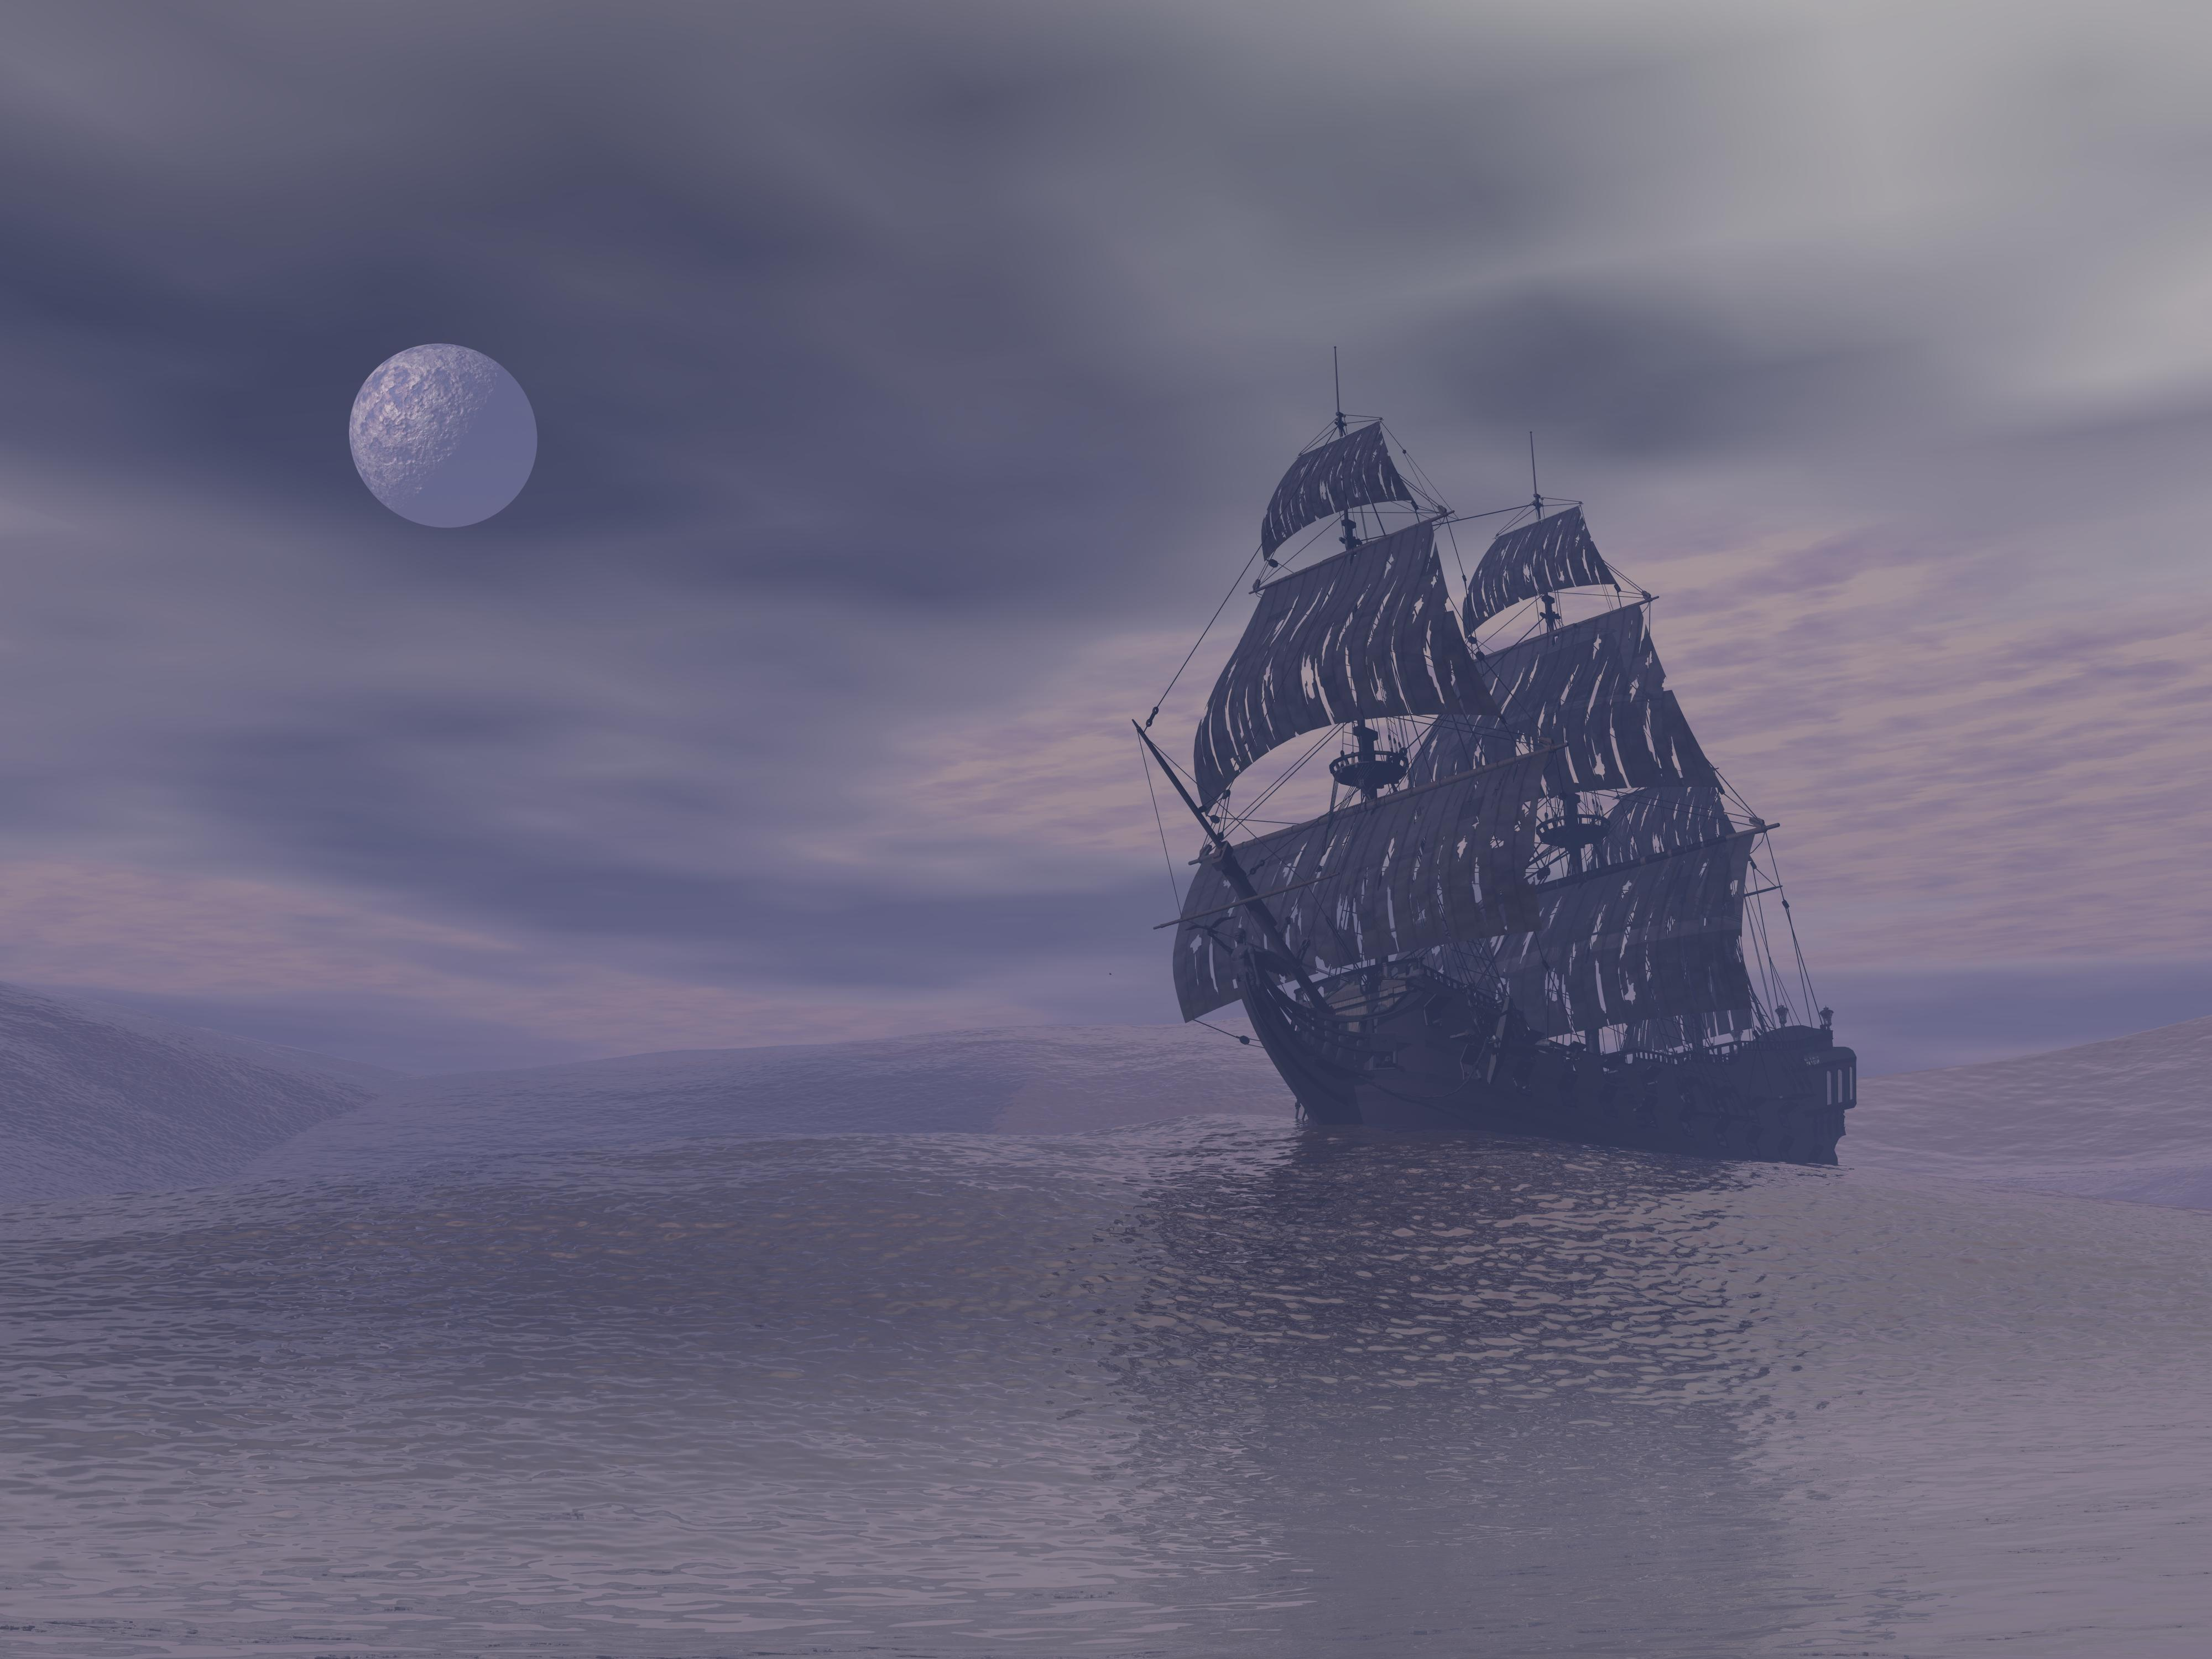 Ghost Ships (seafarers' stories)